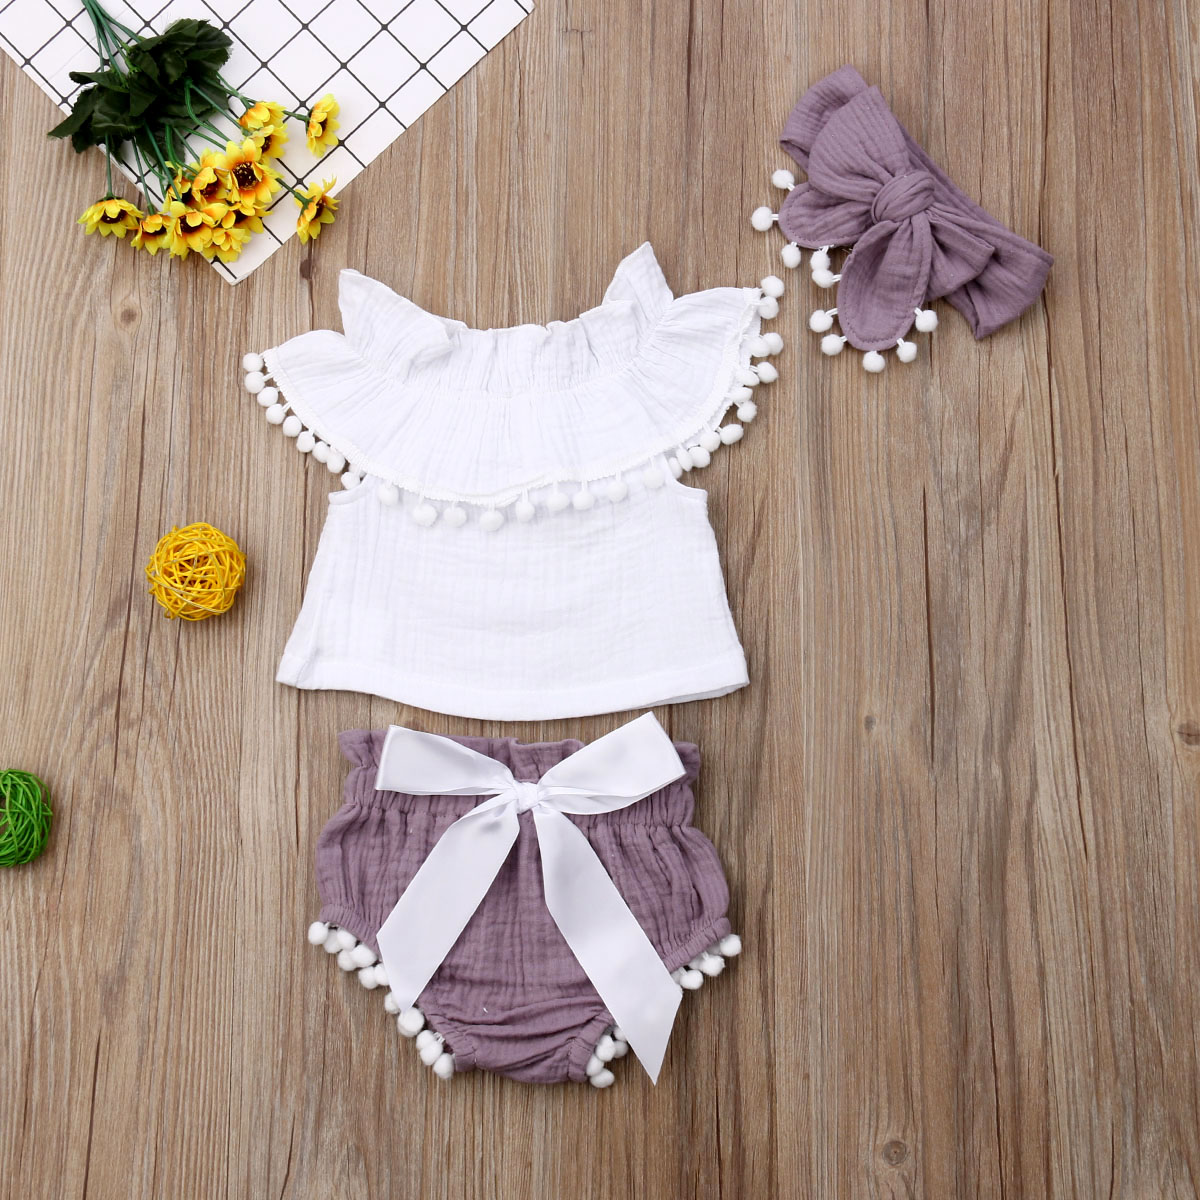 Toddler Infant Baby Girls Clothes Ruffle Tops + Shorts + Headband 3pcs Summer Cotton Linen Outfit